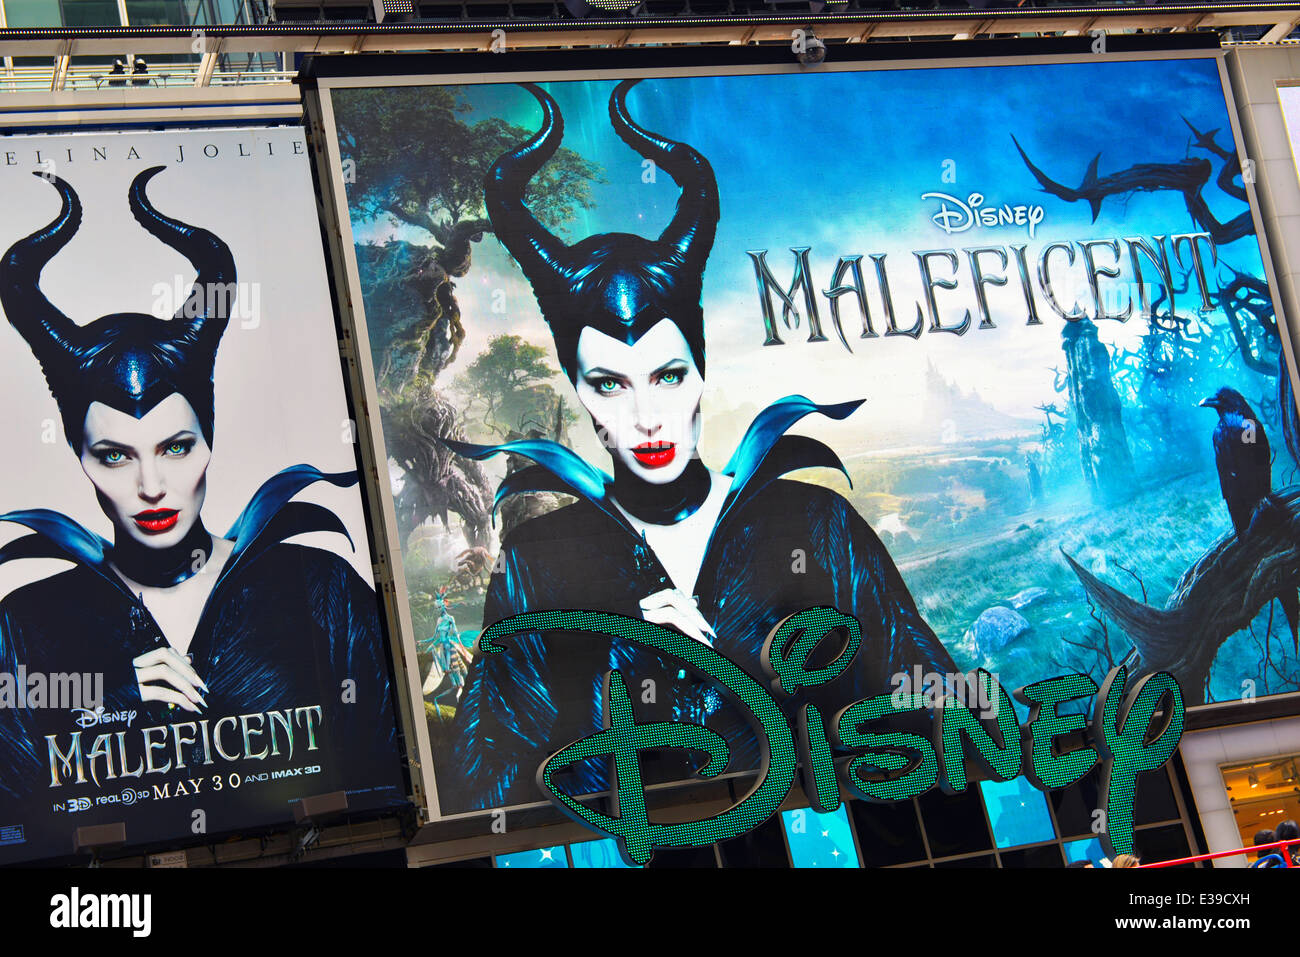 Billboard advertising Disney's Maleficent showing in theaters starting May 30, 2014, New York, USA Stock Photo